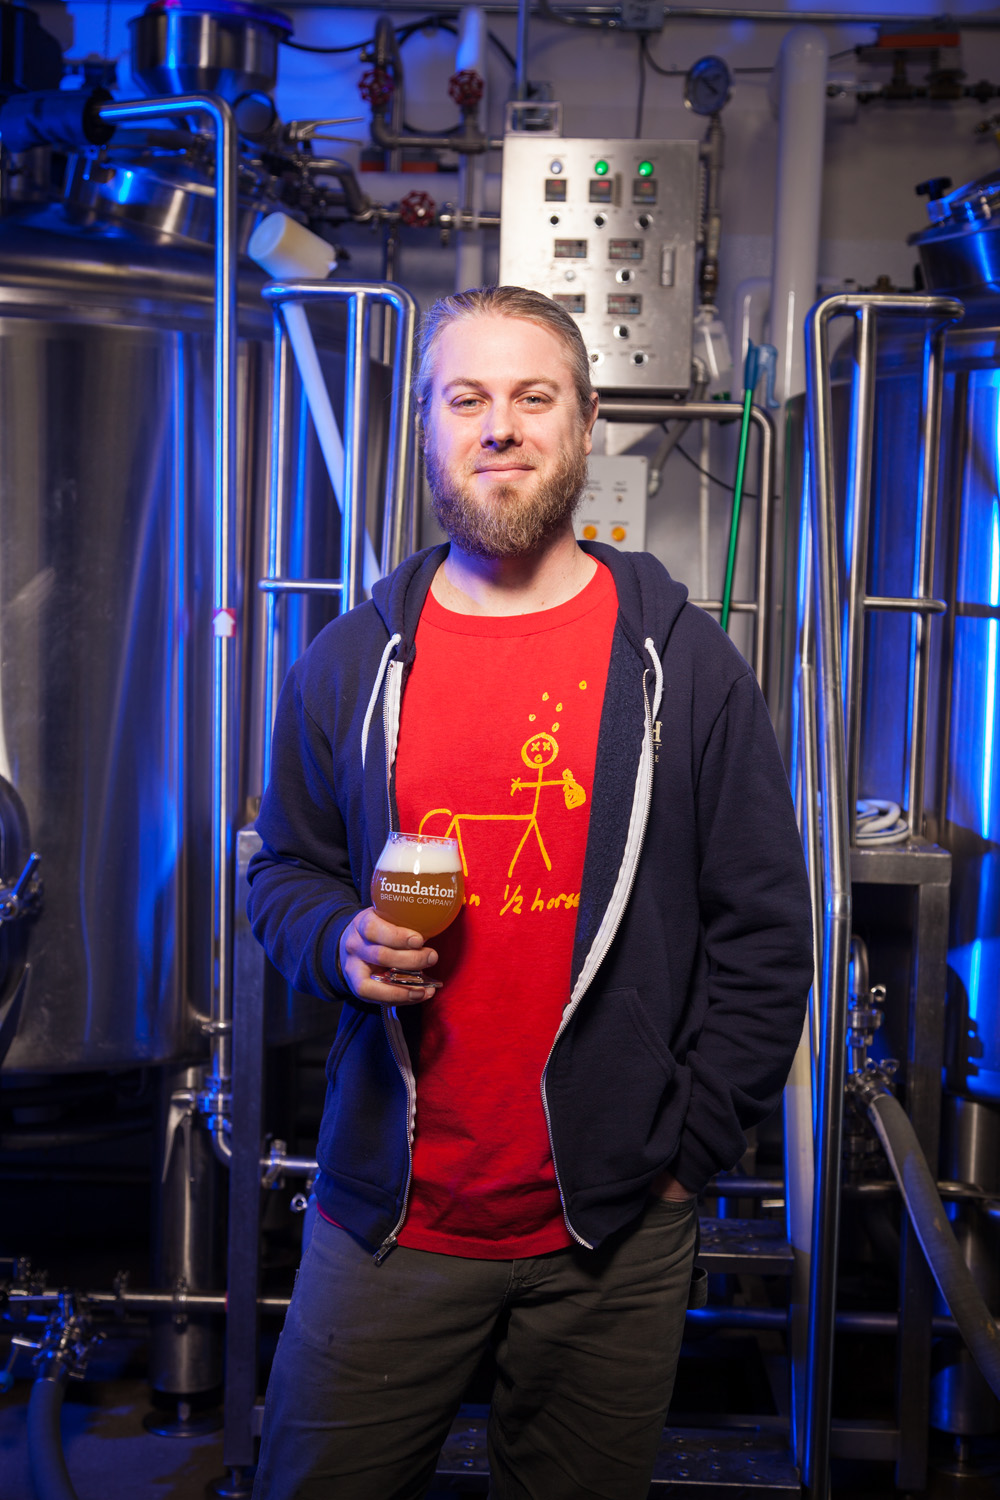 Joel Mahaffey, Brewmaster Foundation Brewing Co. Portland, ME Established in 2014